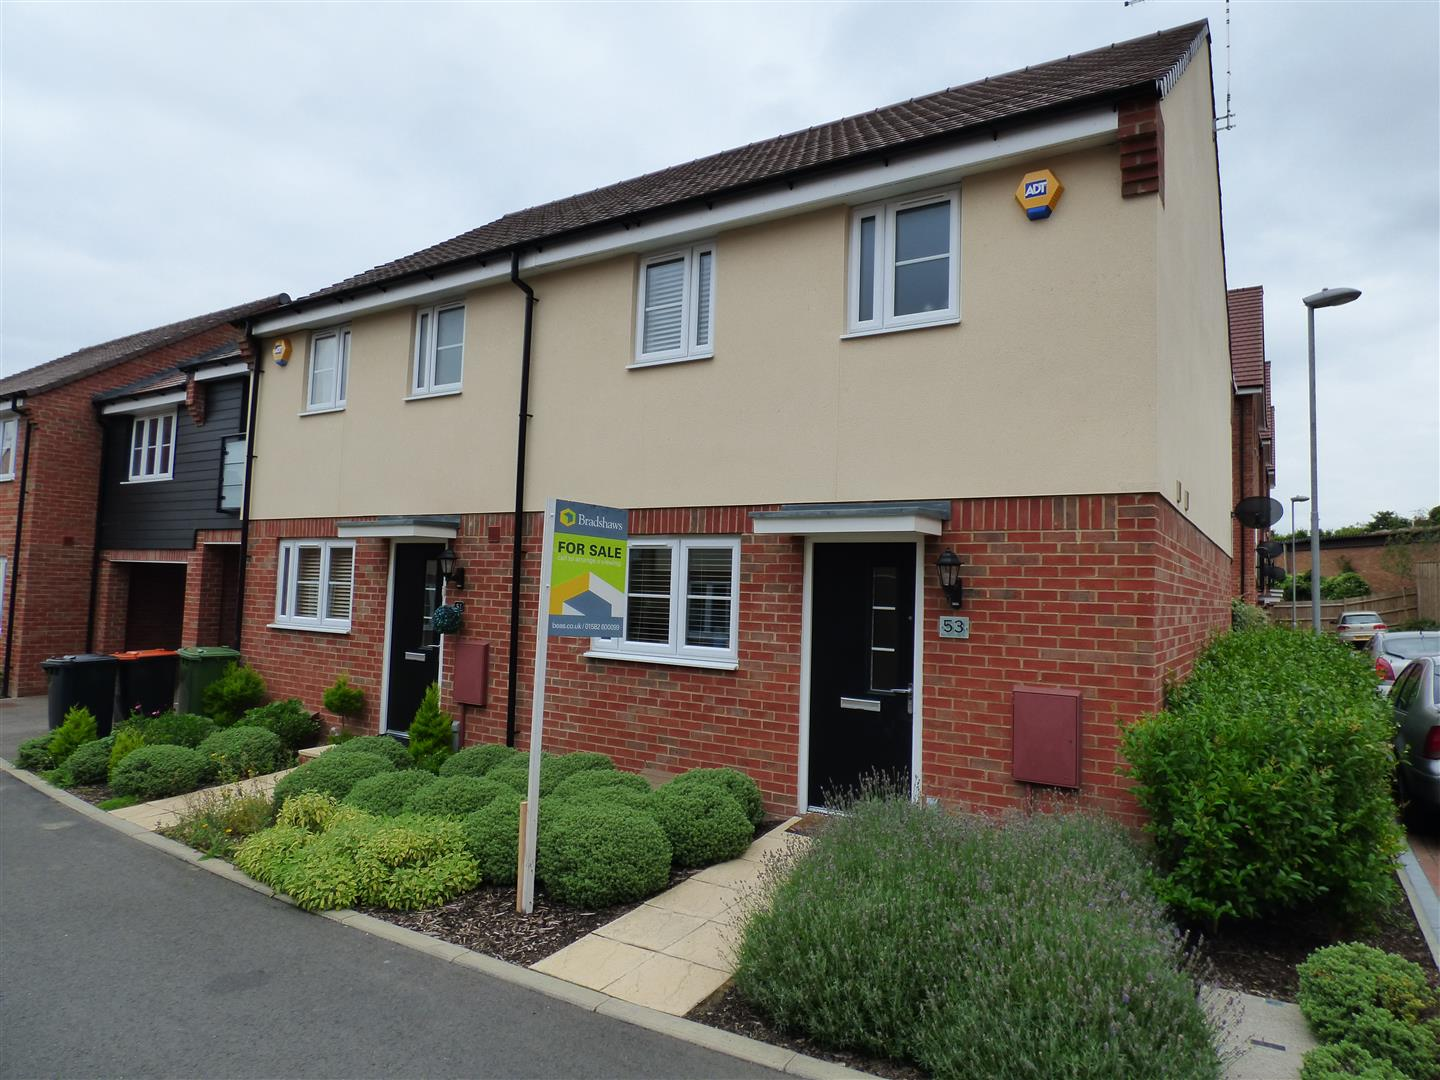 3 Bedrooms Property for sale in Wolseley Drive, Dunstable